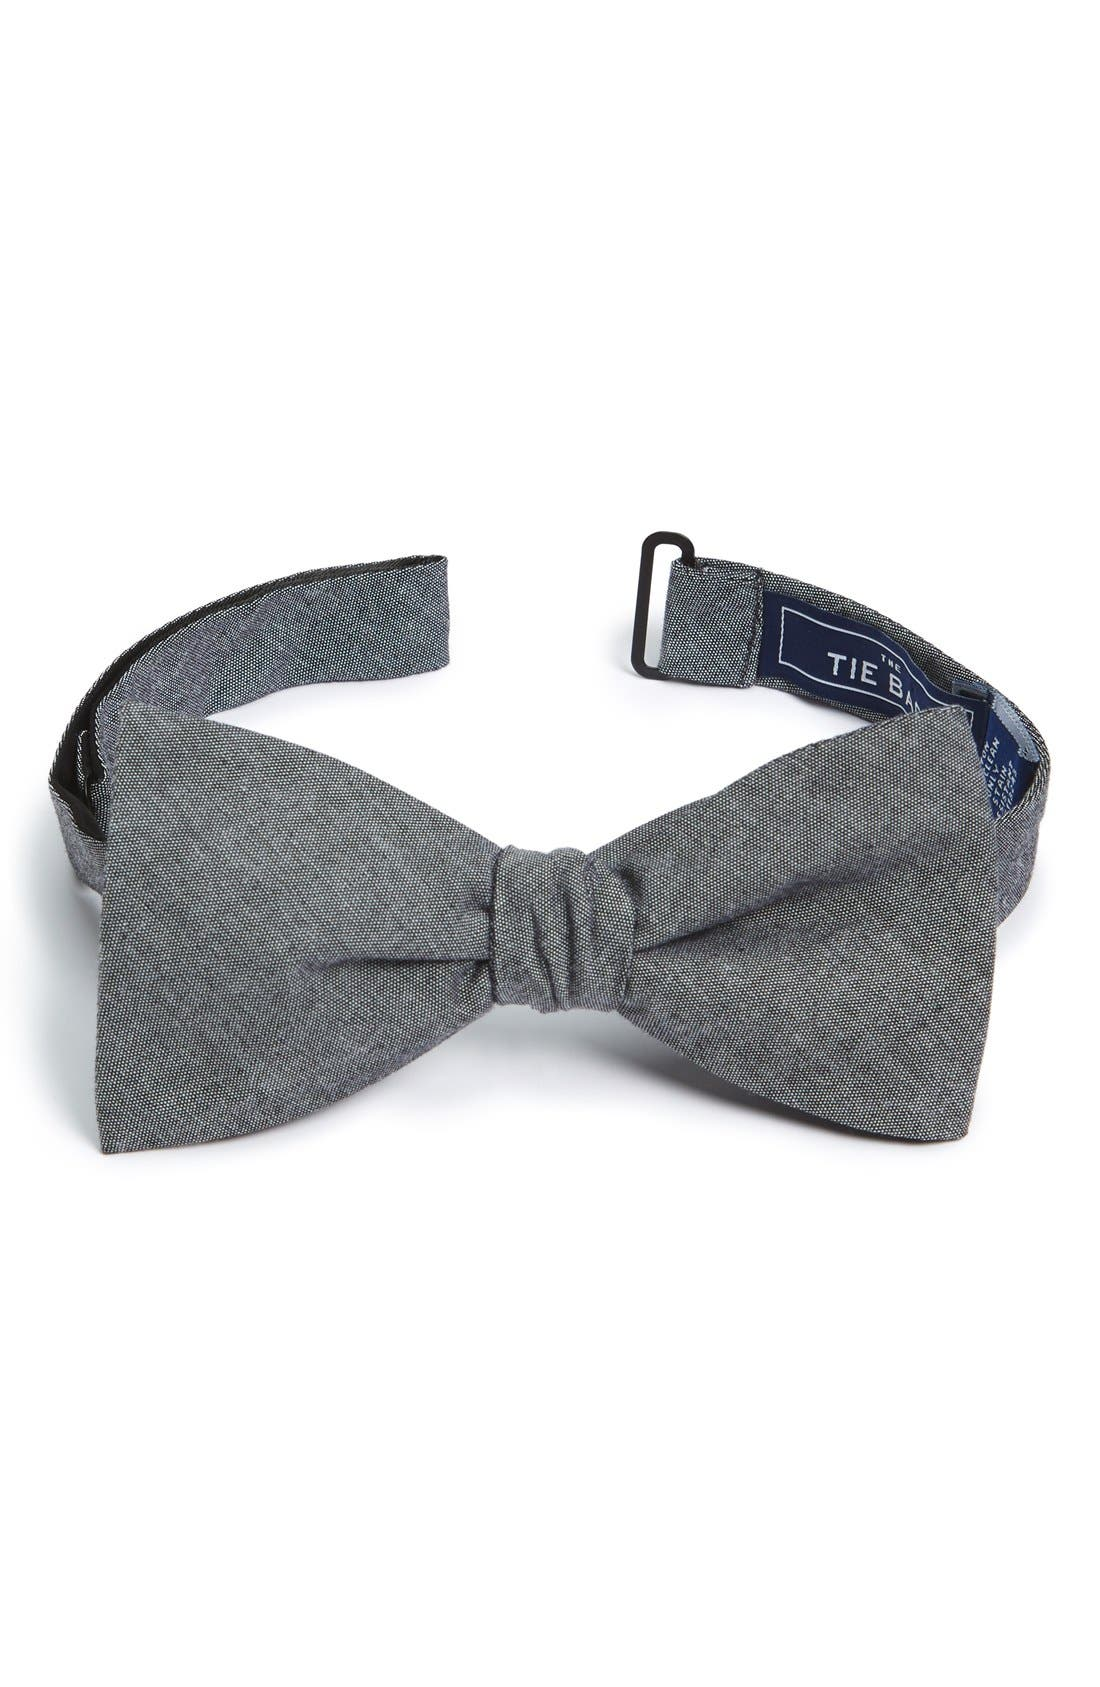 1920s Bow Ties | Gatsby Tie,  Art Deco Tie Mens The Tie Bar Cotton Bow Tie Size One Size - Grey $19.00 AT vintagedancer.com